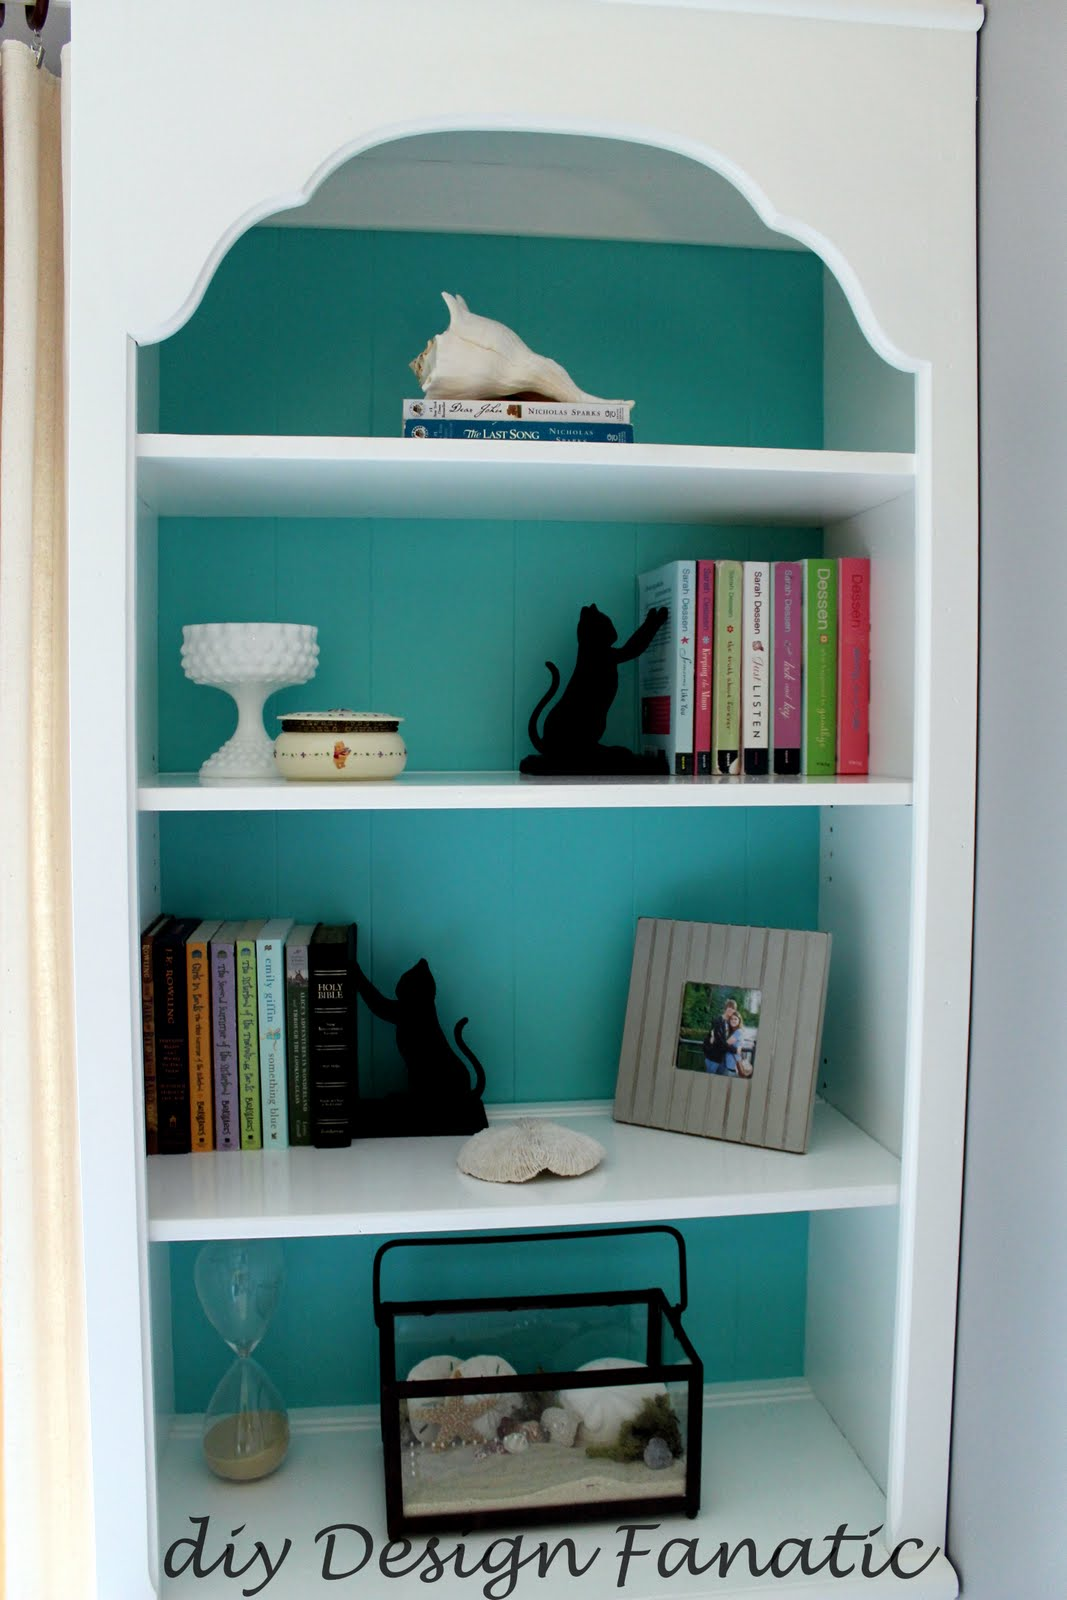 Bookcases Diydesignfanatic Com Upcycle Cottage Craigslist